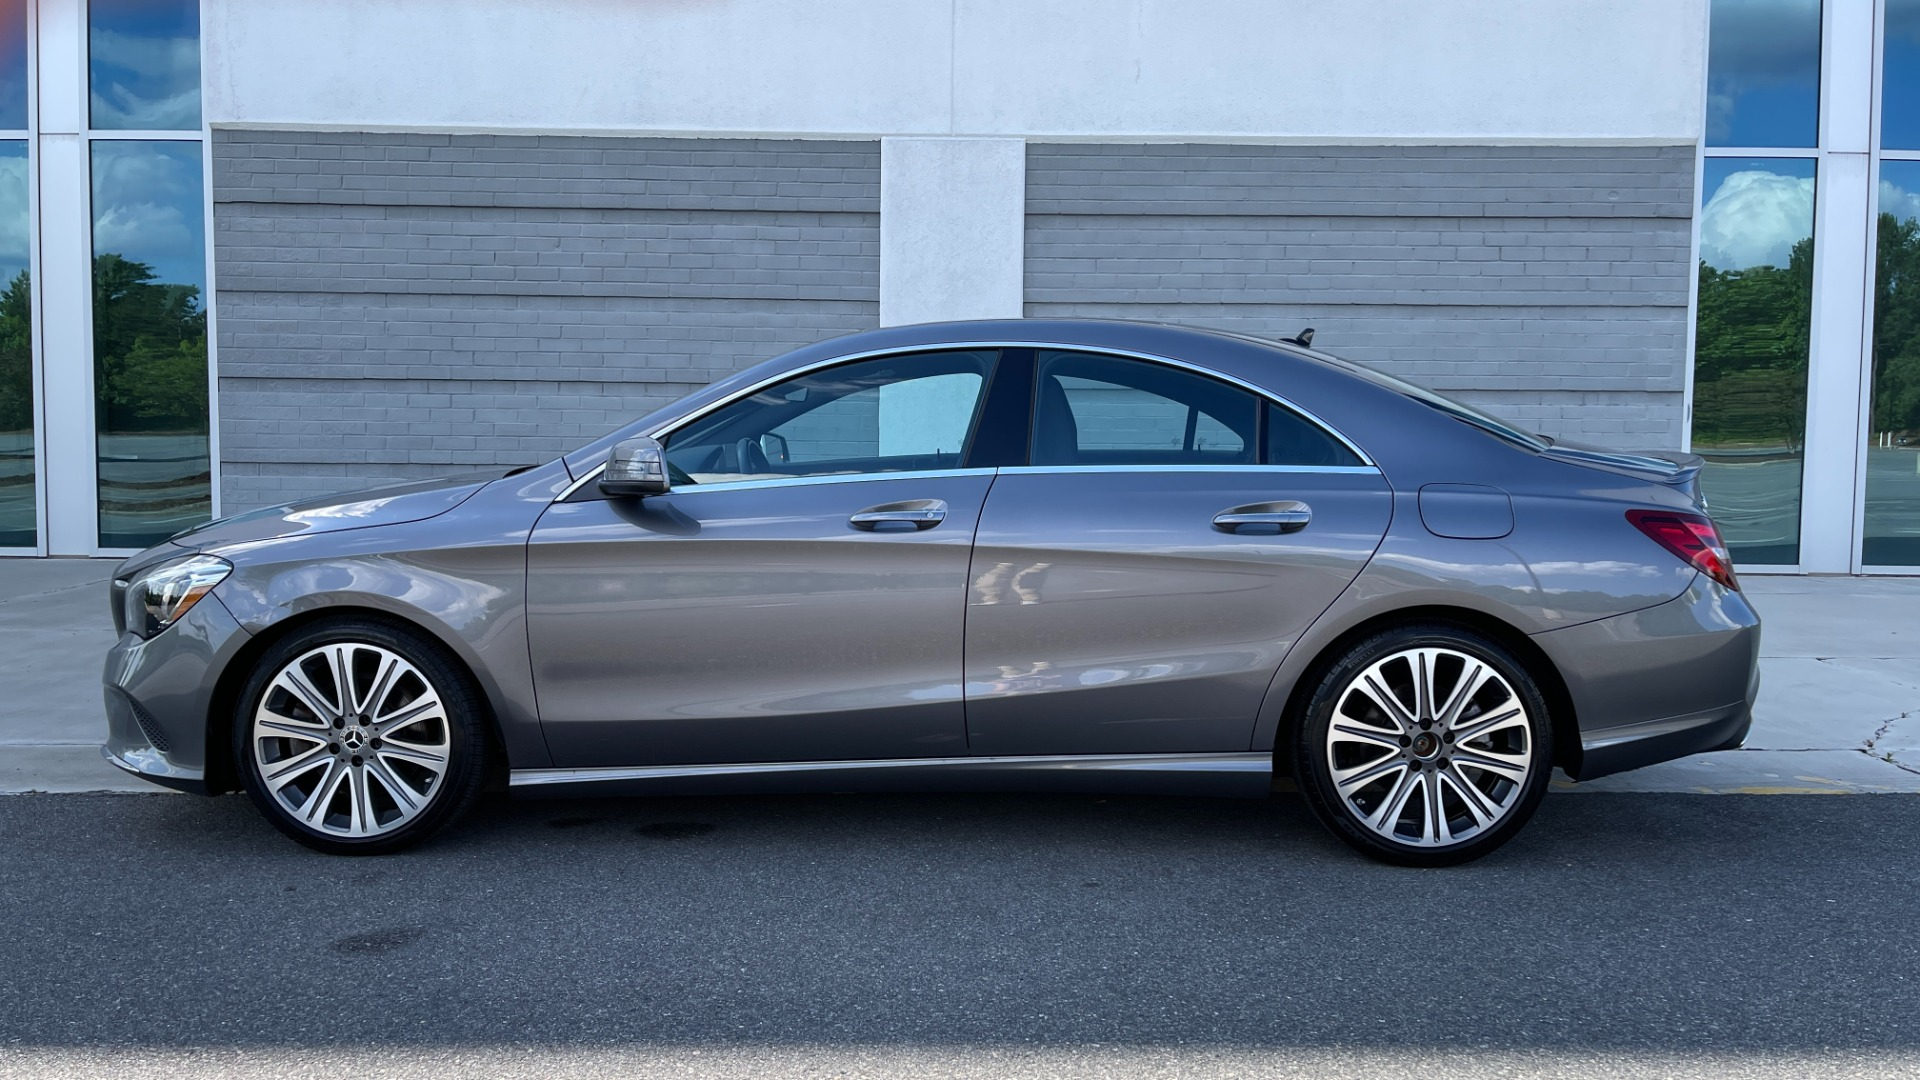 Used 2019 Mercedes-Benz CLA 250 4MATIC PREM & CONV PKG / APPLE / PANO-ROOF / H/K SND / REARVIEW for sale $29,795 at Formula Imports in Charlotte NC 28227 3